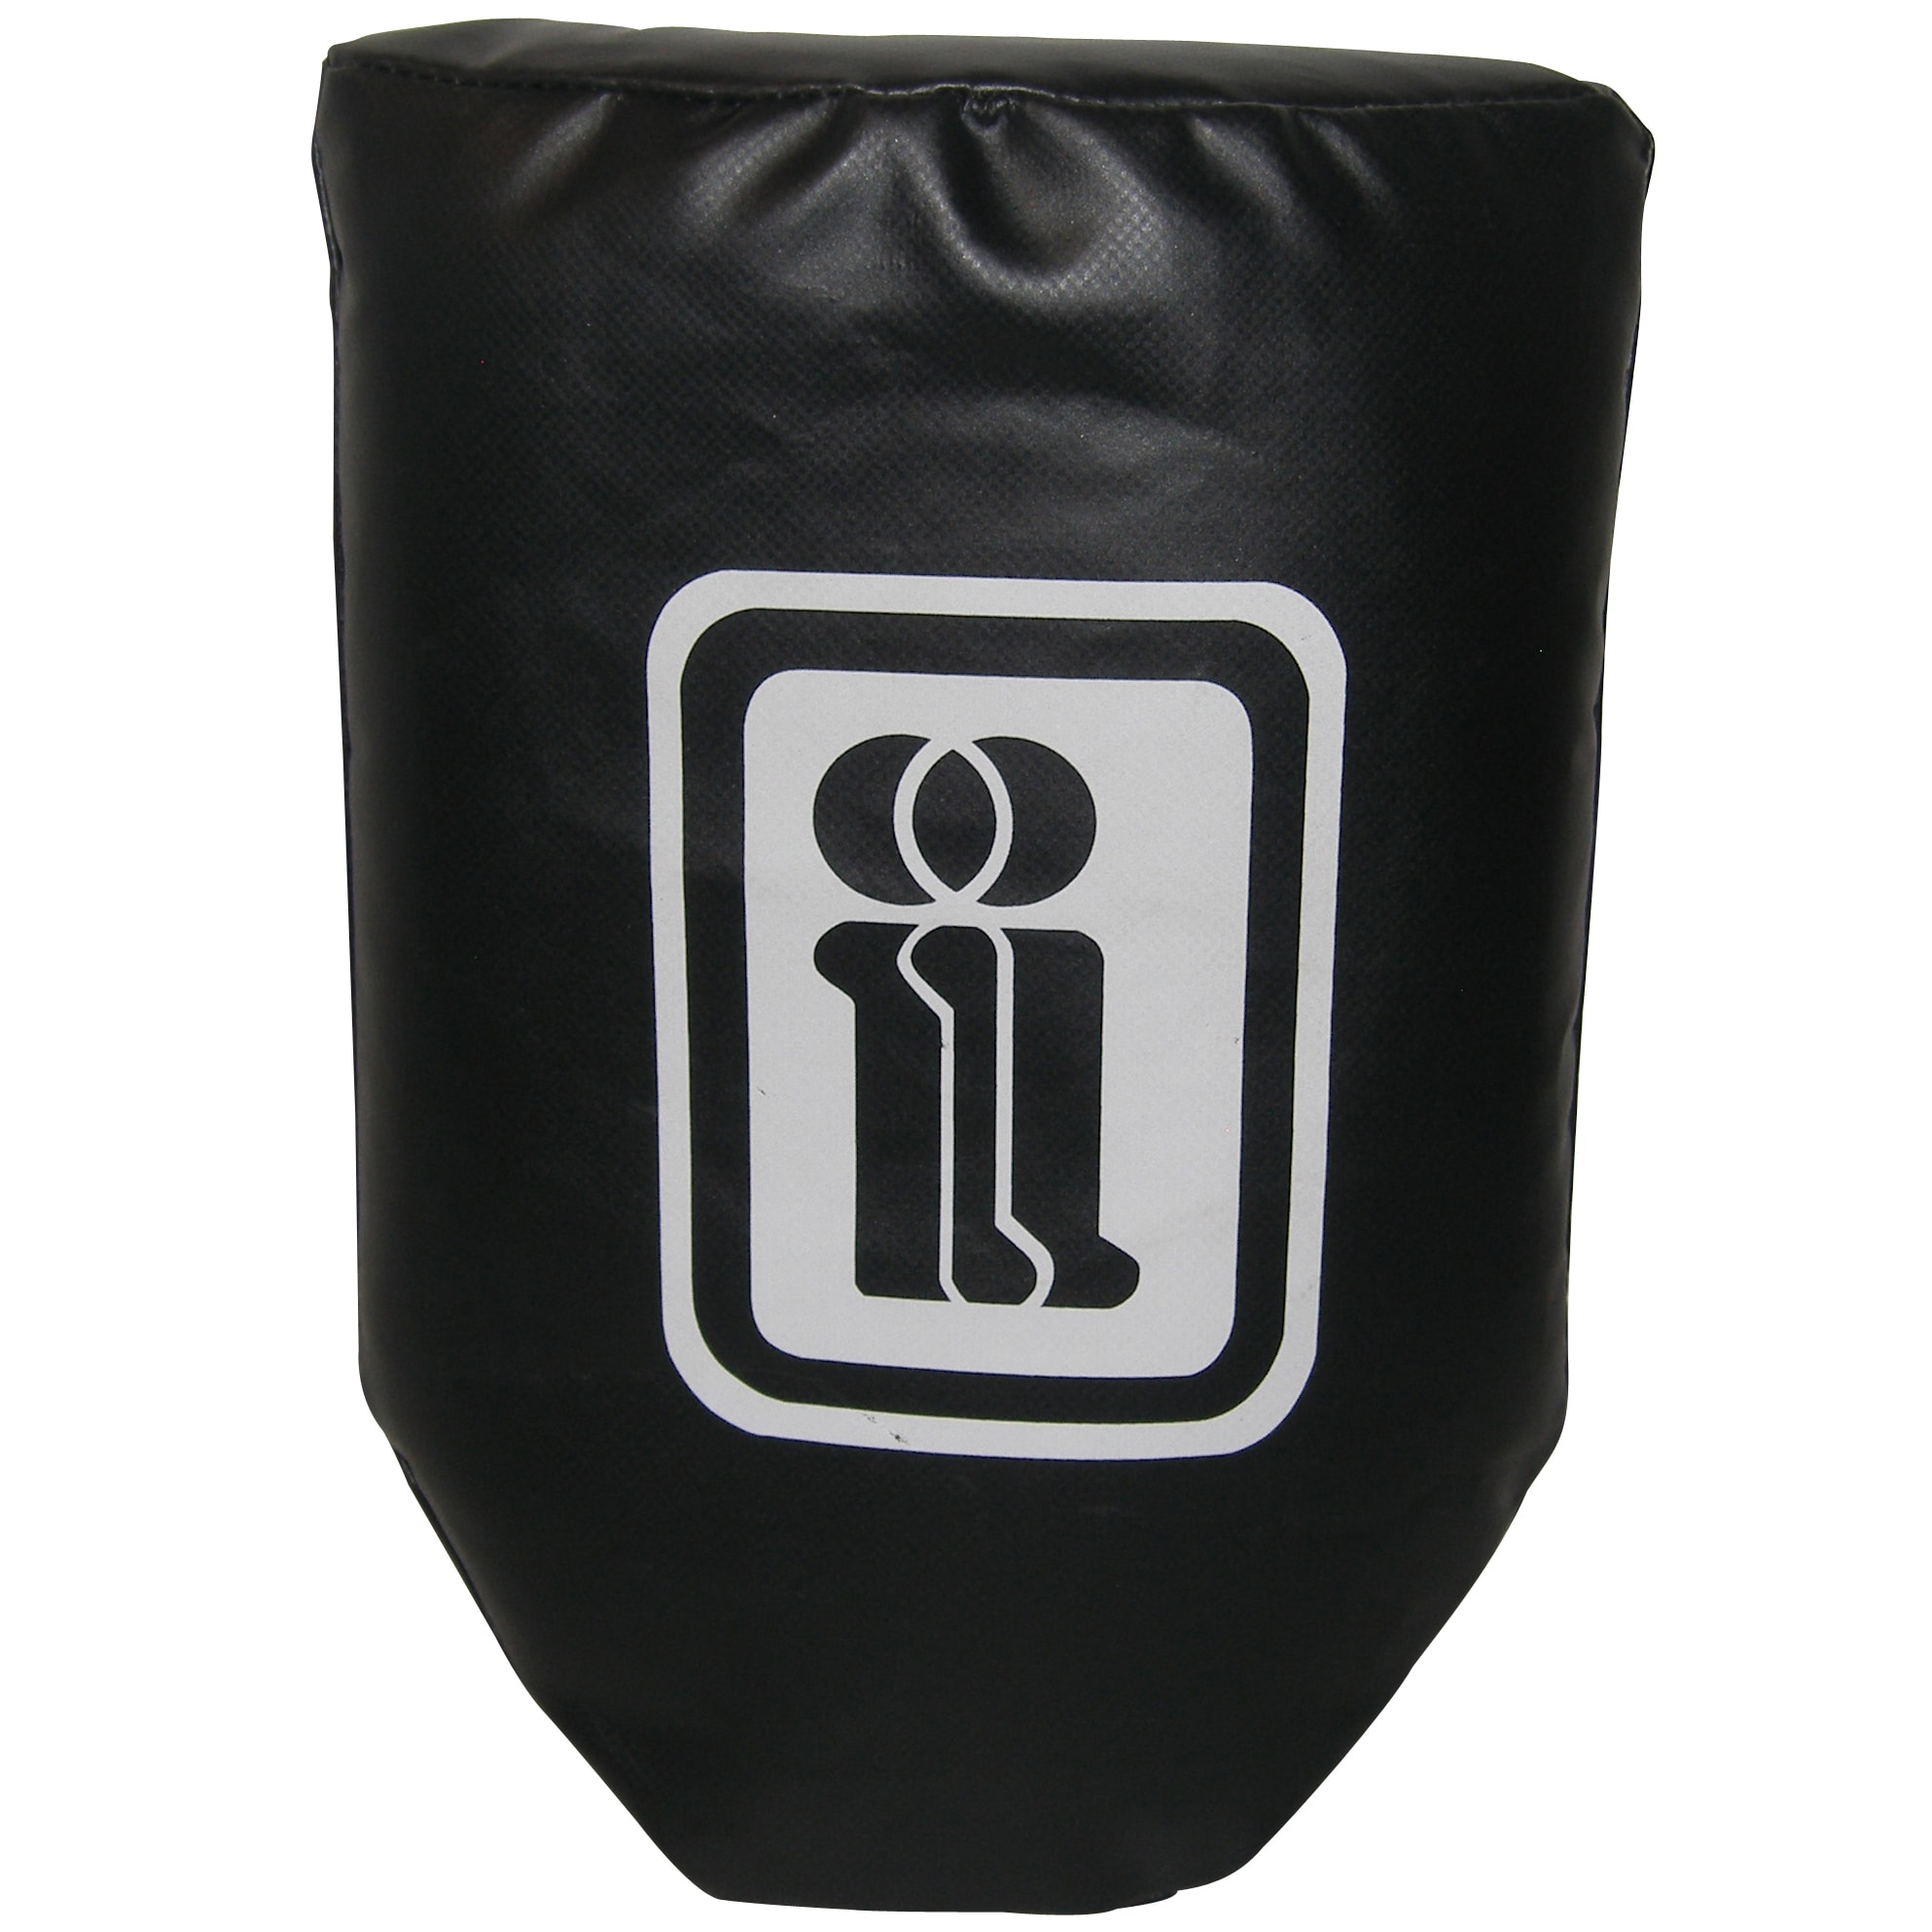 I&I Sports  Kicking Striking Hitting Punching Arm Shield Pad